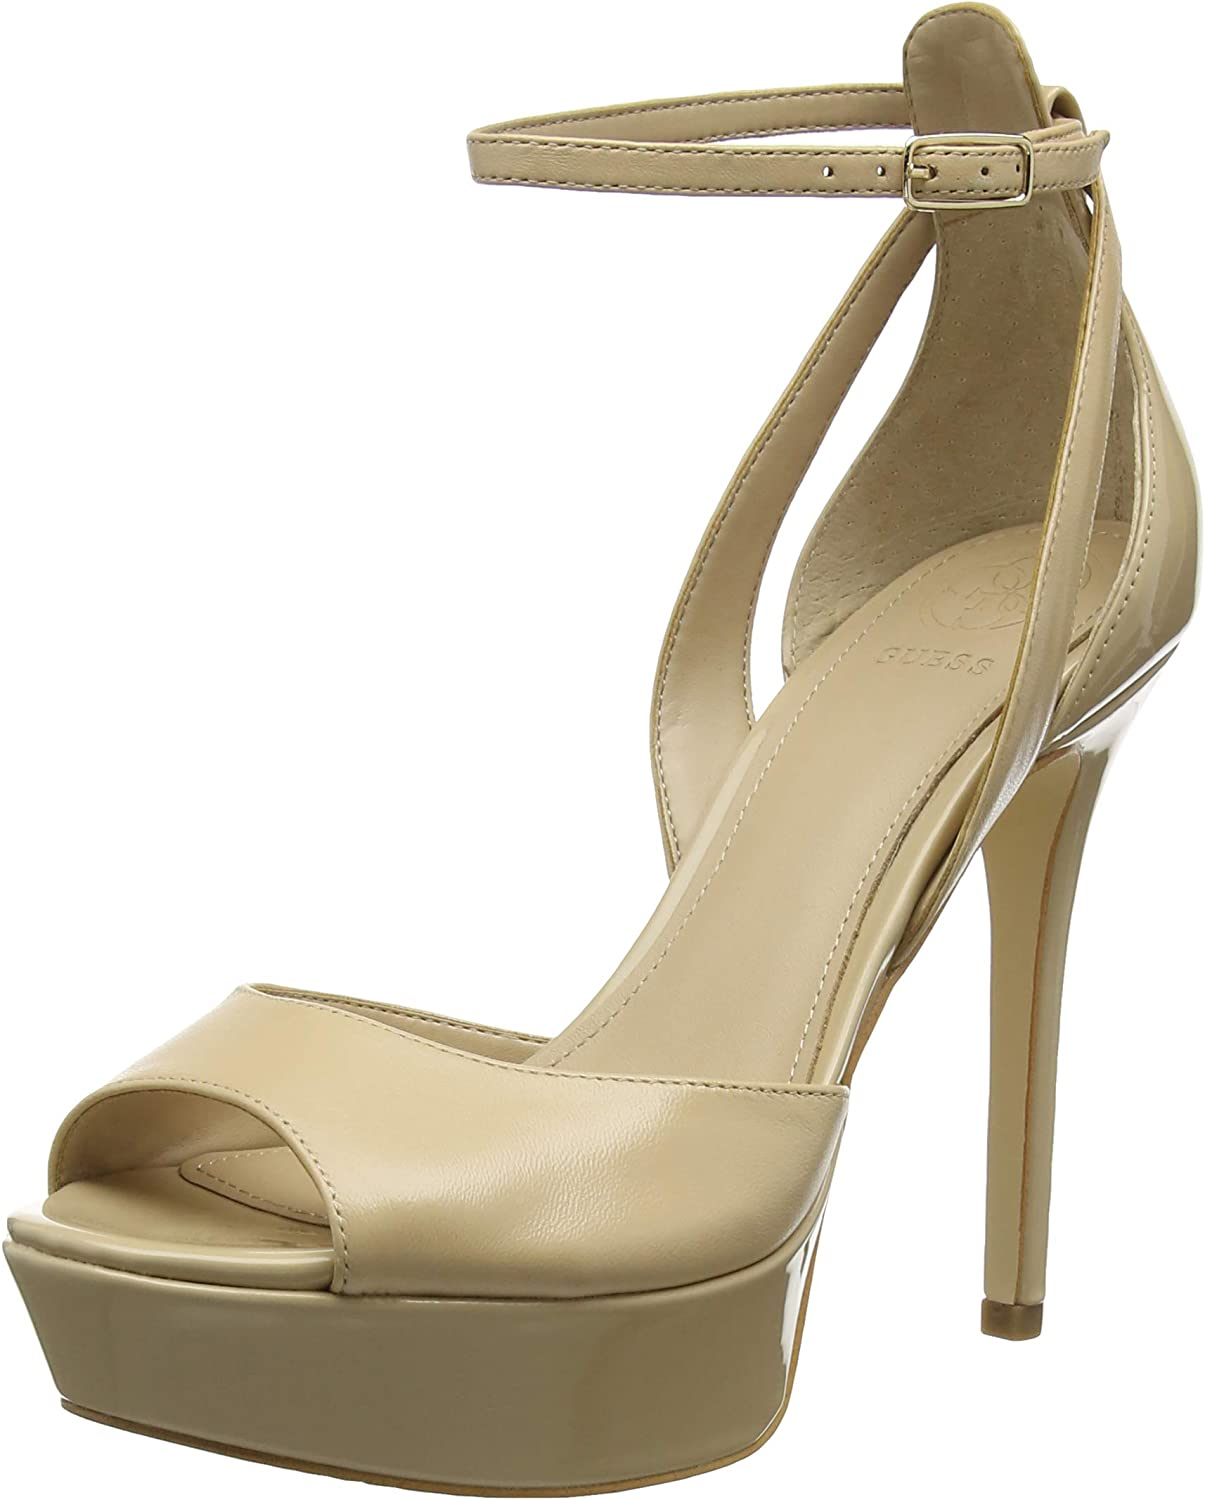 Guess Damen Laurele Sandalo (Sandal) Leath Knchelriemchen Pumps